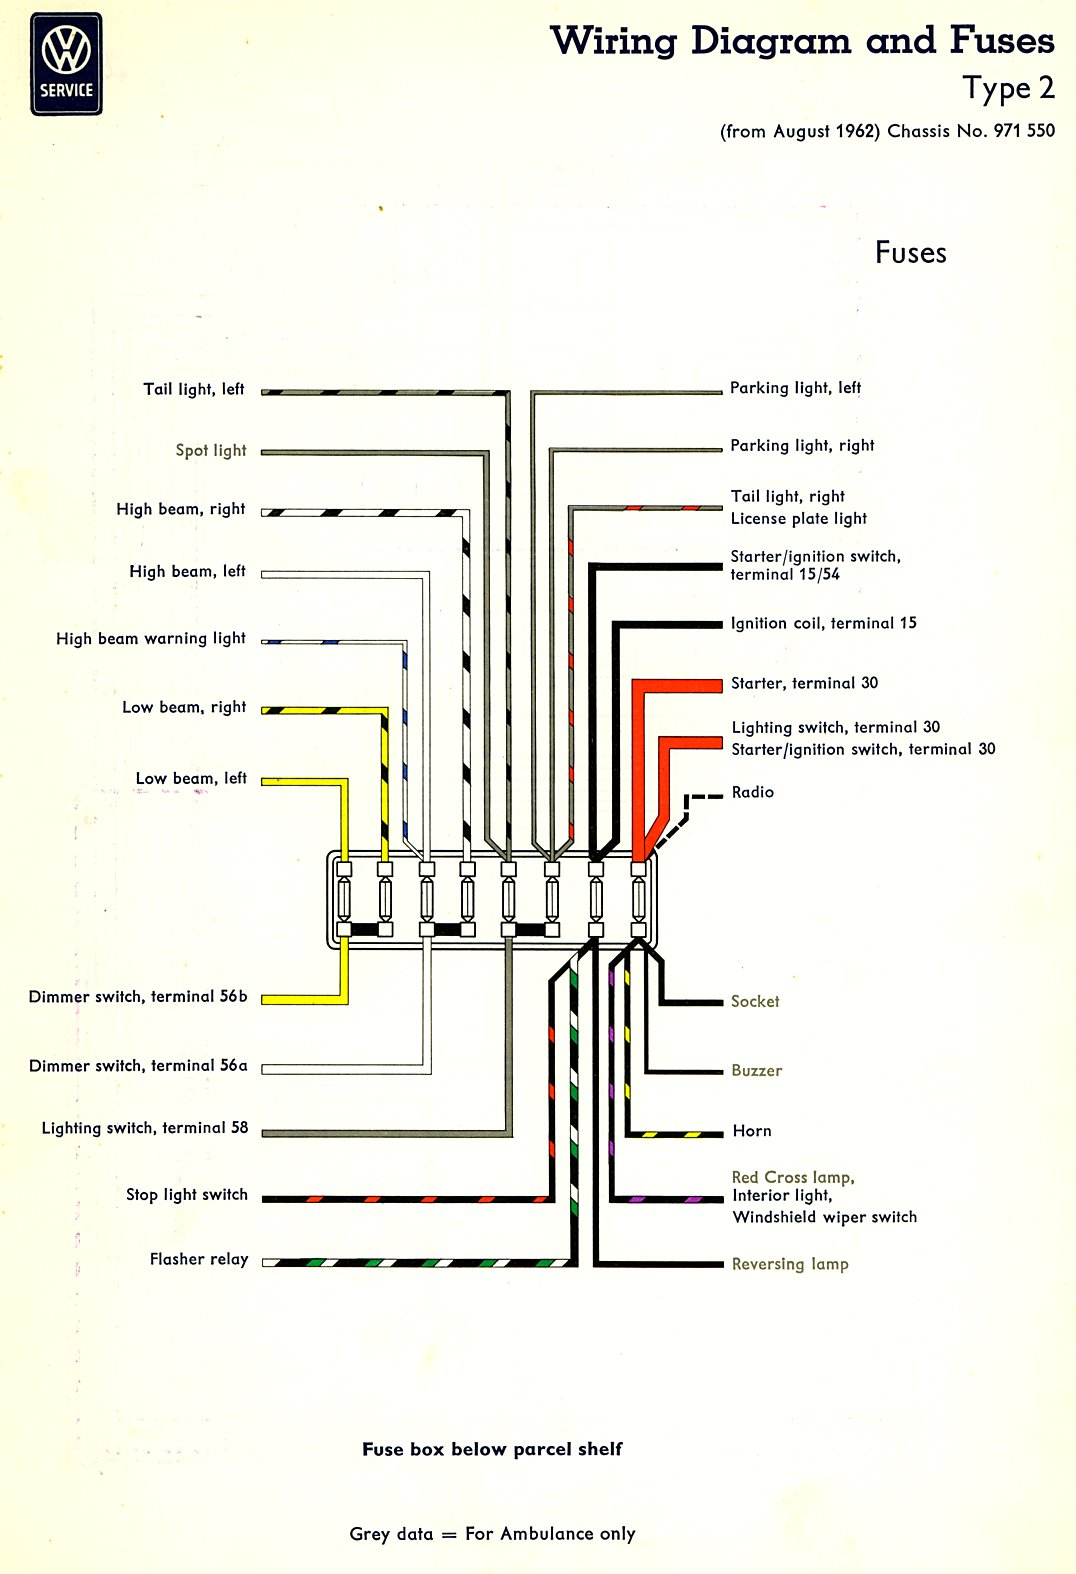 bus_63_fuses thesamba com type 2 wiring diagrams 1978 vw bus fuse box diagram at creativeand.co